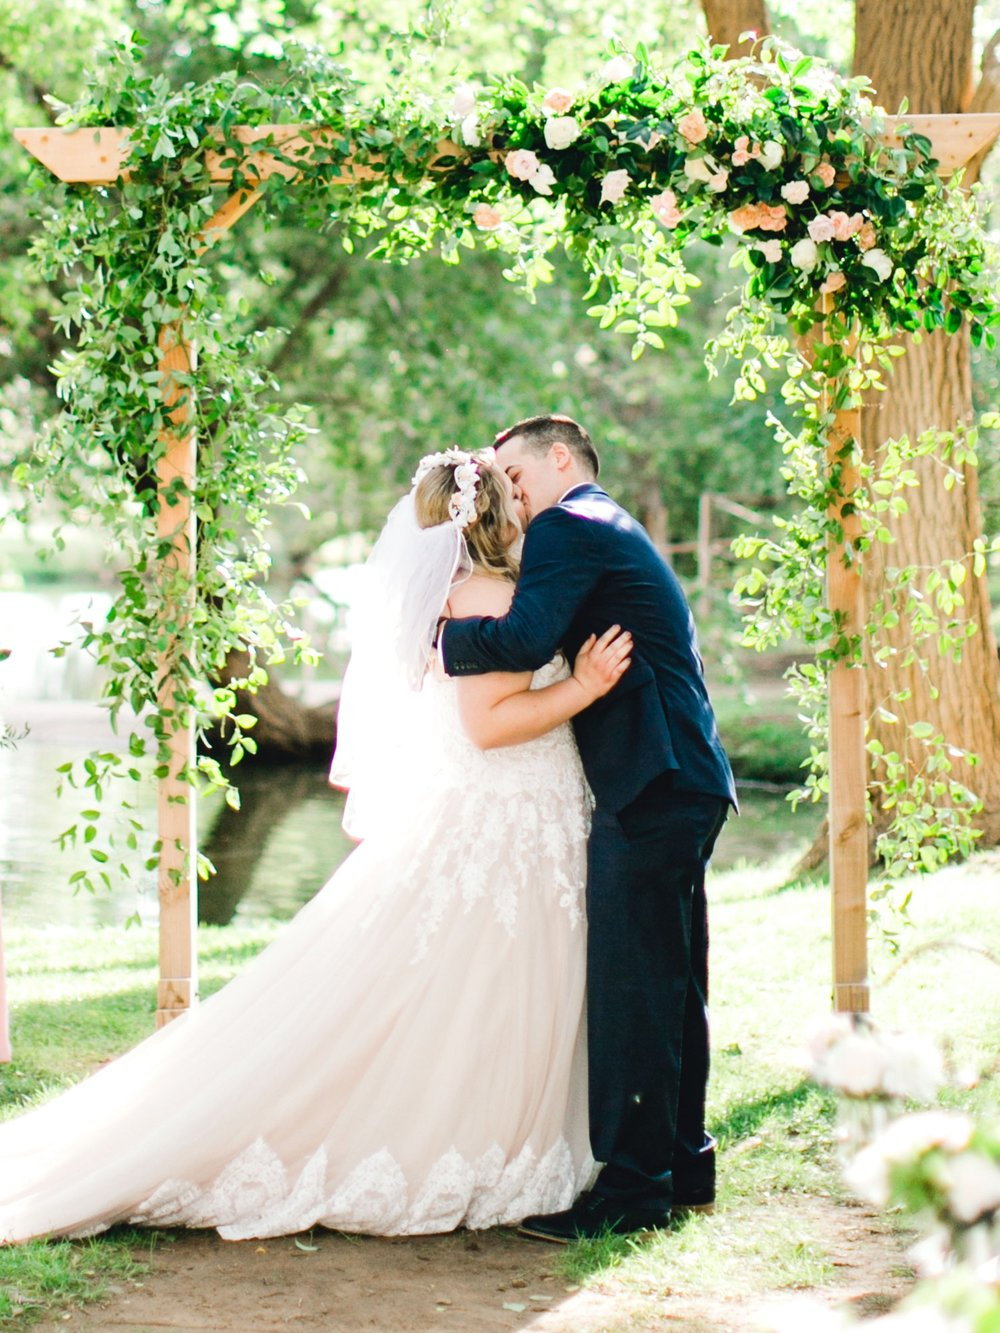 SARAH_AND_GEOFFREY_SHARP_SPIRIT_RANCH_WEDDING_ALLEEJ_LUBBOCK_TX_0077.jpg